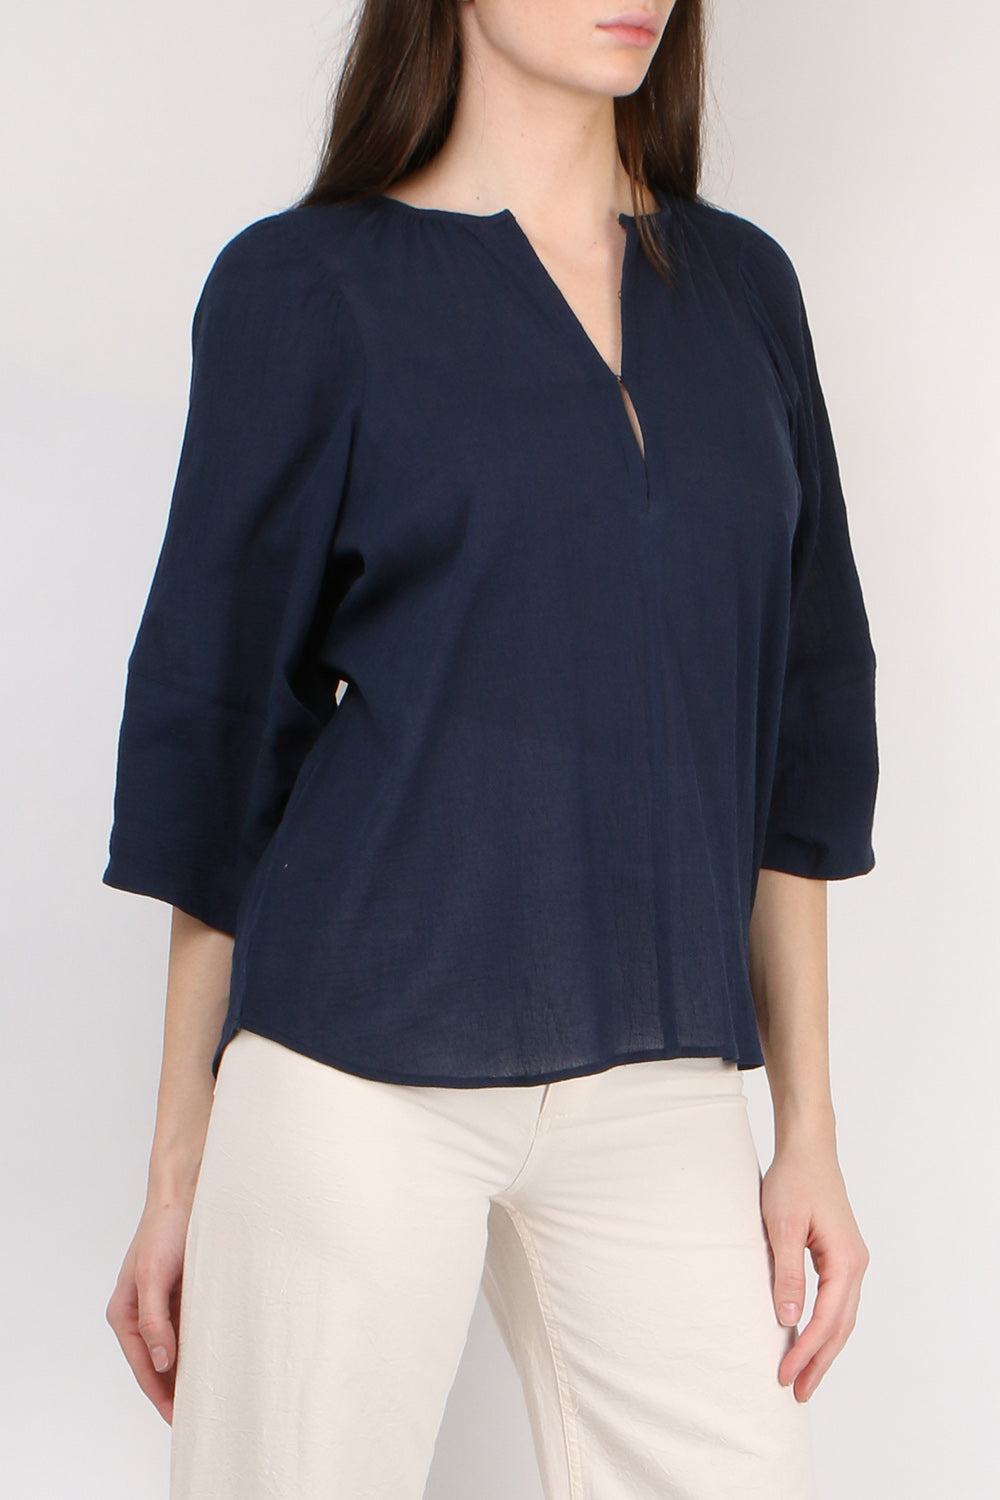 Apiece Apart Nova Balloon Sleeve Top